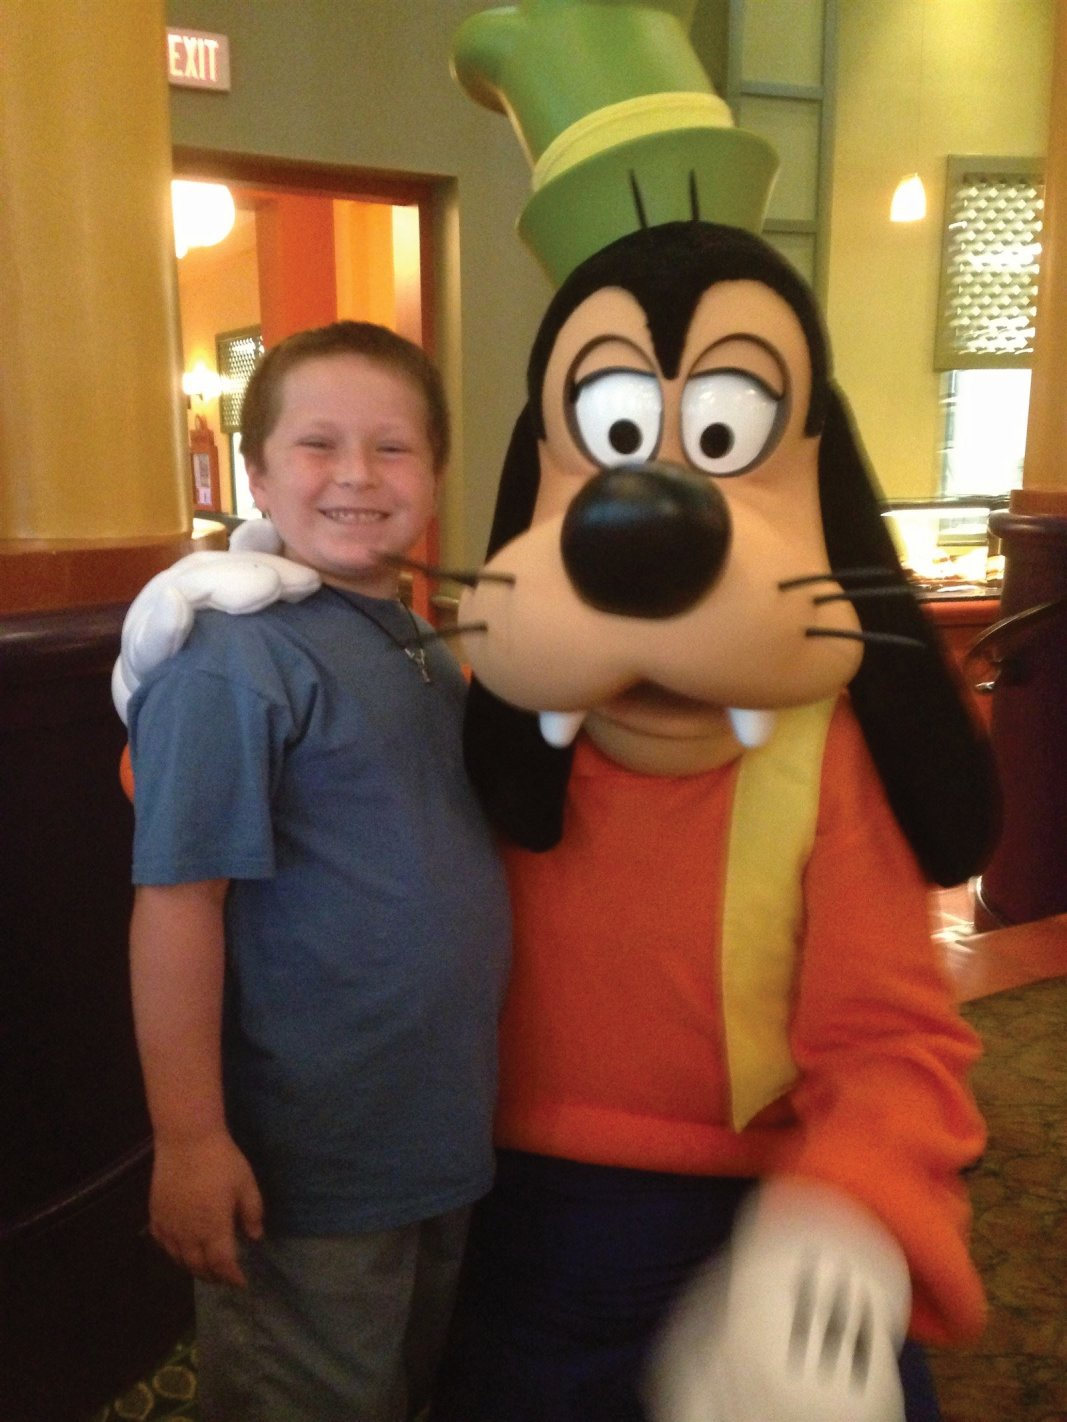 William and Pluto, a charter breakfast awaits your child at many Disney Resorts